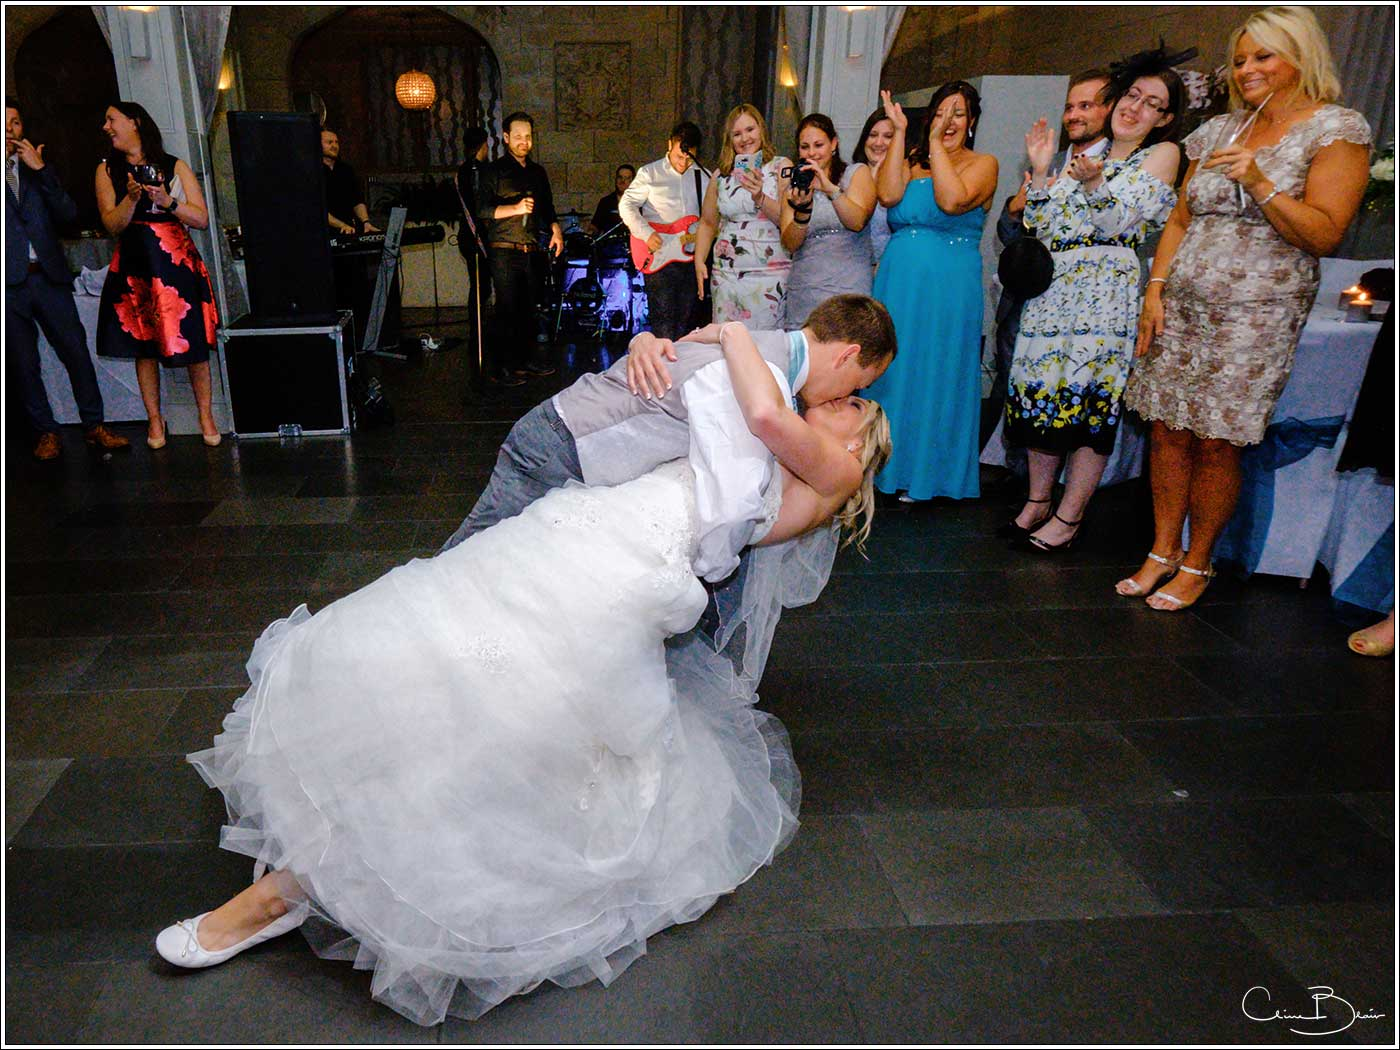 Groom dipping his bride at the end of their first dance-by Hampton manor wedding photographer Clive Blair Photography